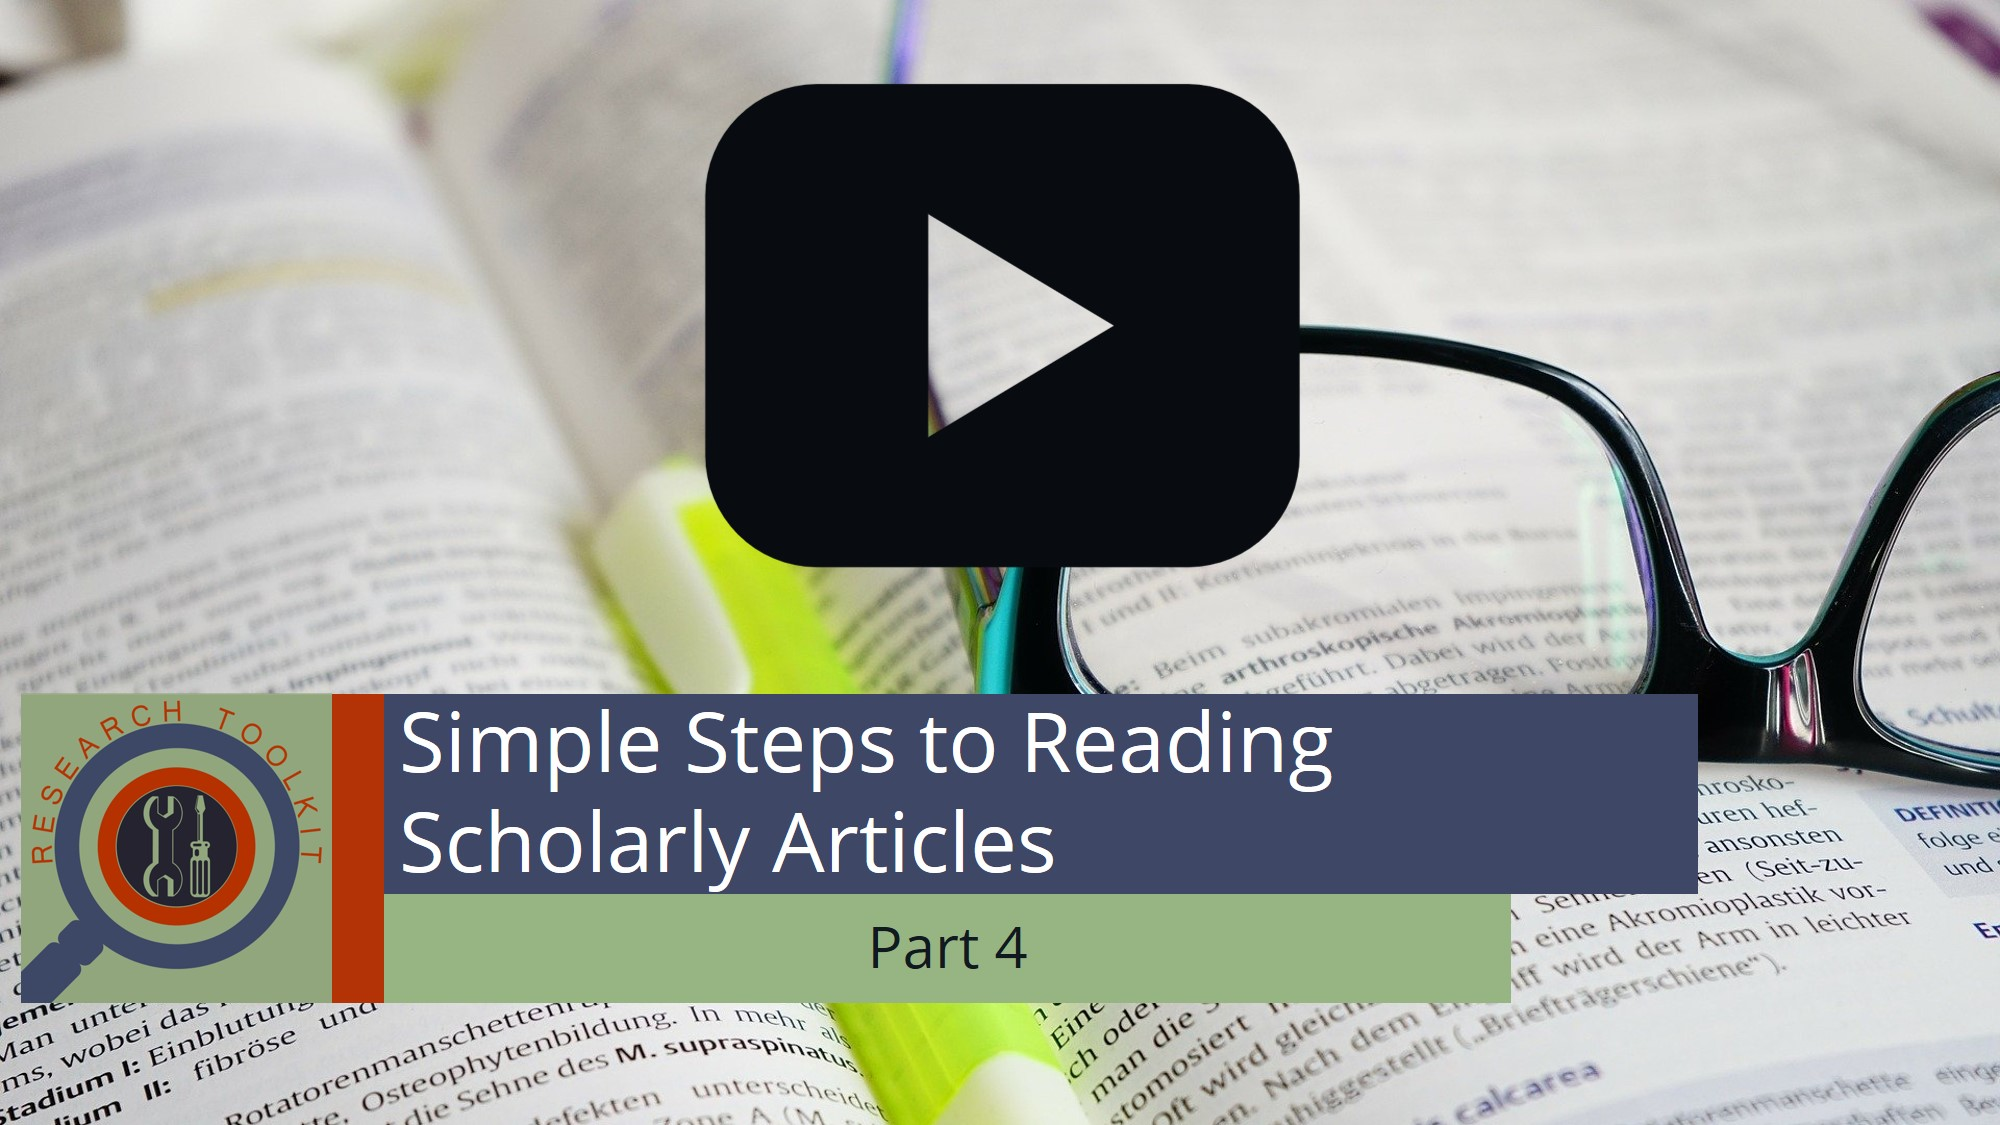 Simple Steps to Reading Scholarly Articles Part 4